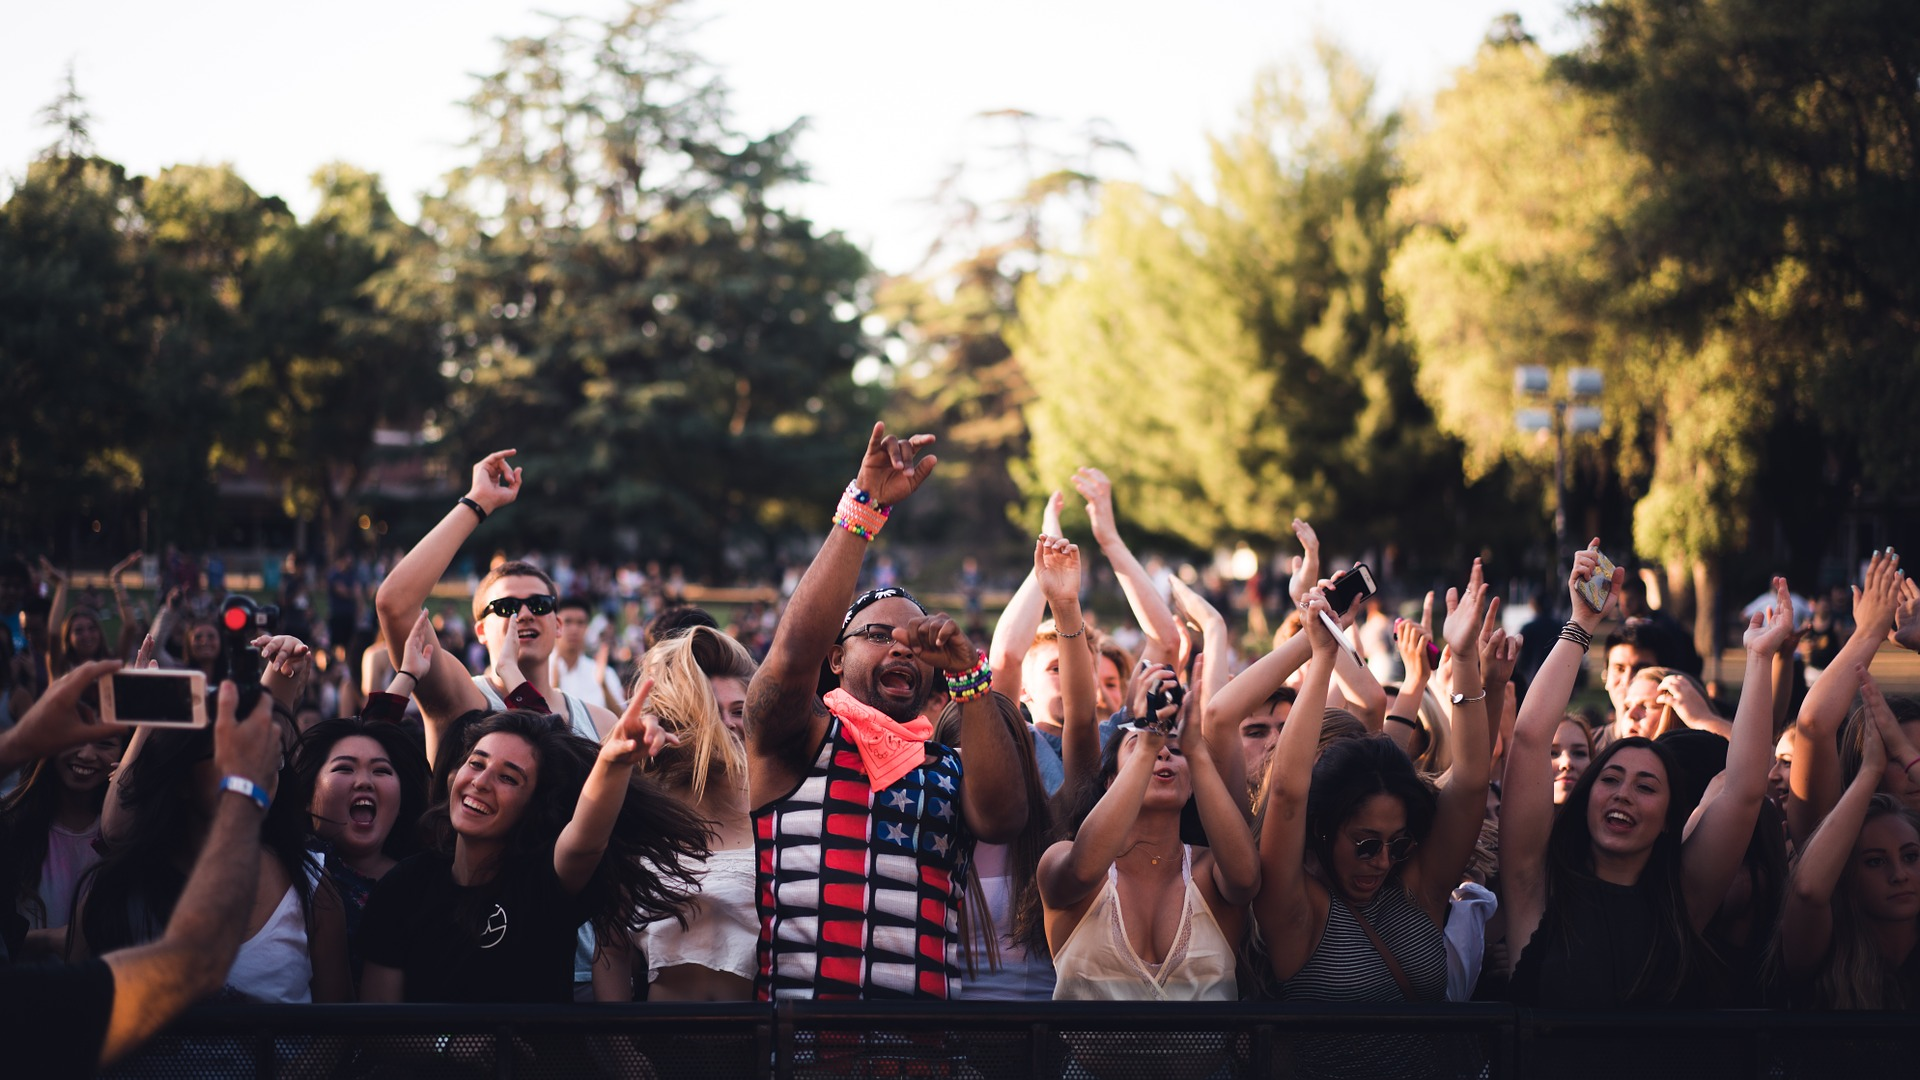 Image: People in a crowd dancing at a concert